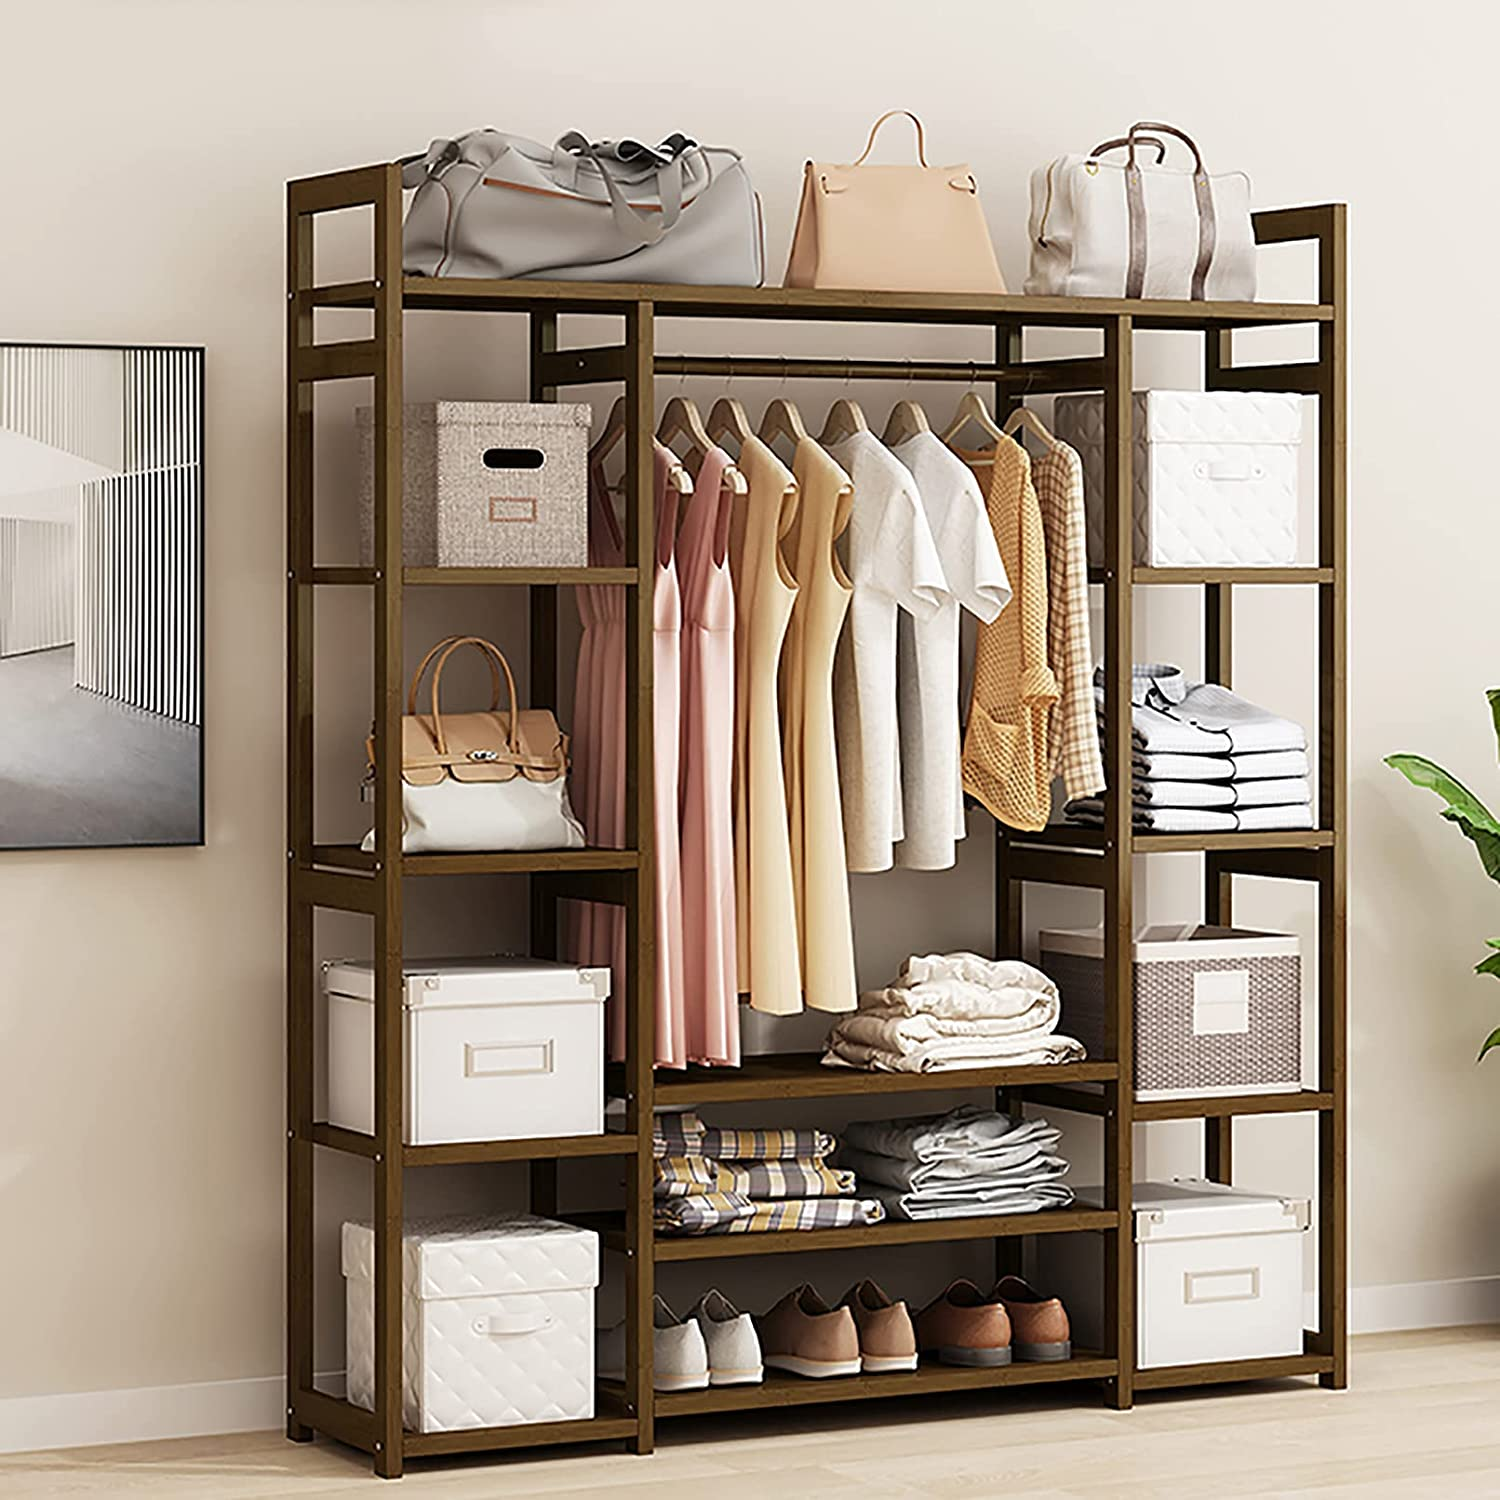 LJHSS Bamboo Clothes wholesale In a popularity Rack with Top Multifunction and Shelves Rod